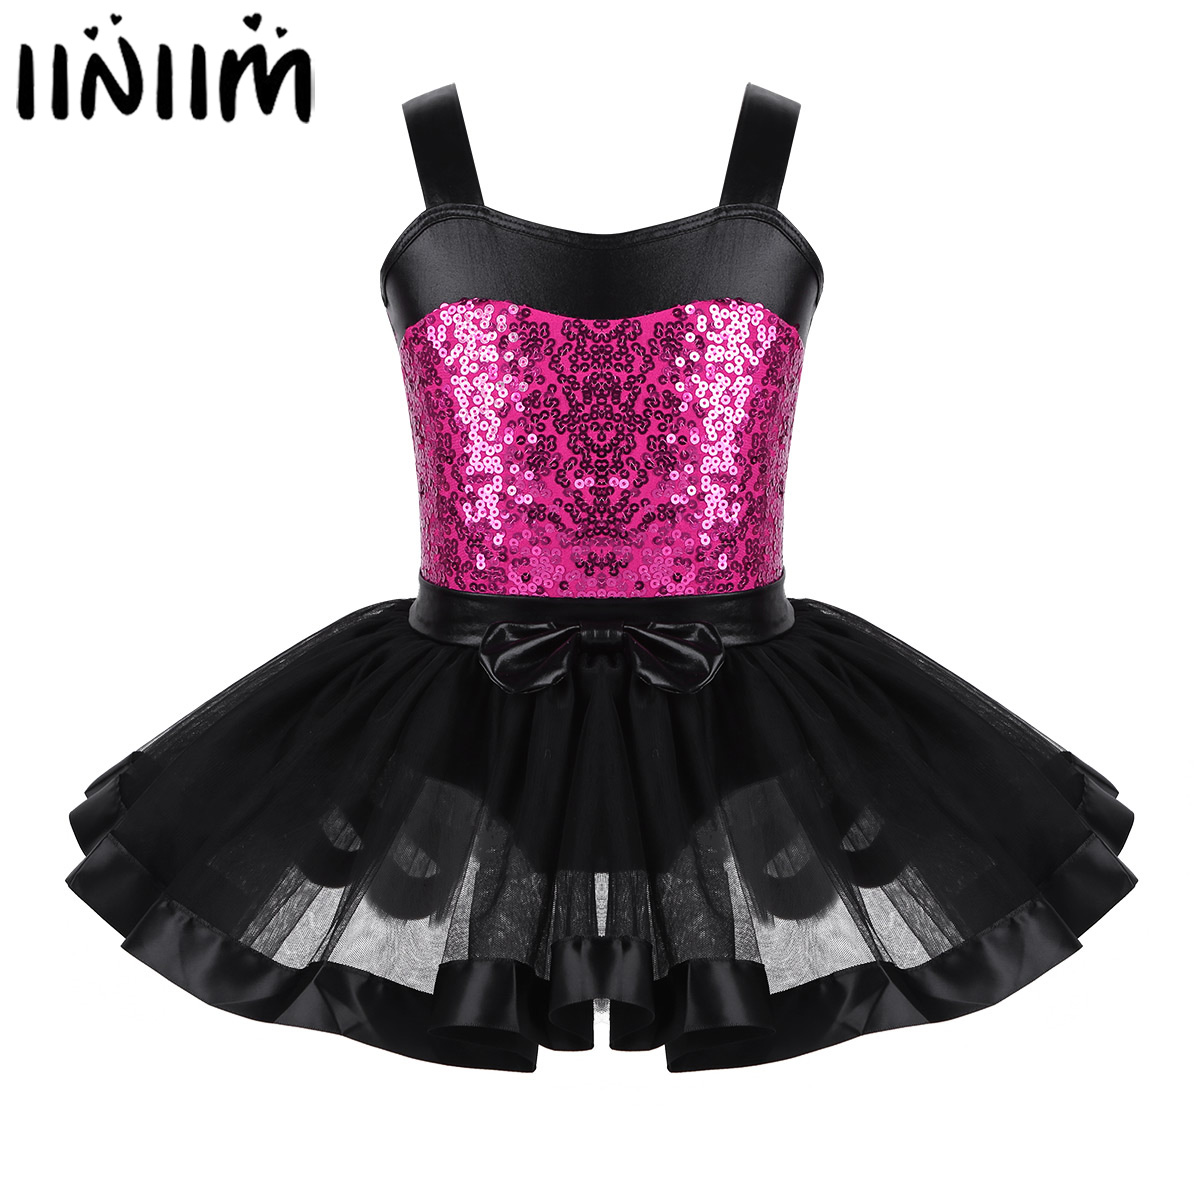 kids-girls-font-b-ballet-b-font-leotard-tutu-dress-reflective-dancewear-gymnastics-leotard-dress-dancing-ballerina-lyrical-dance-costumes